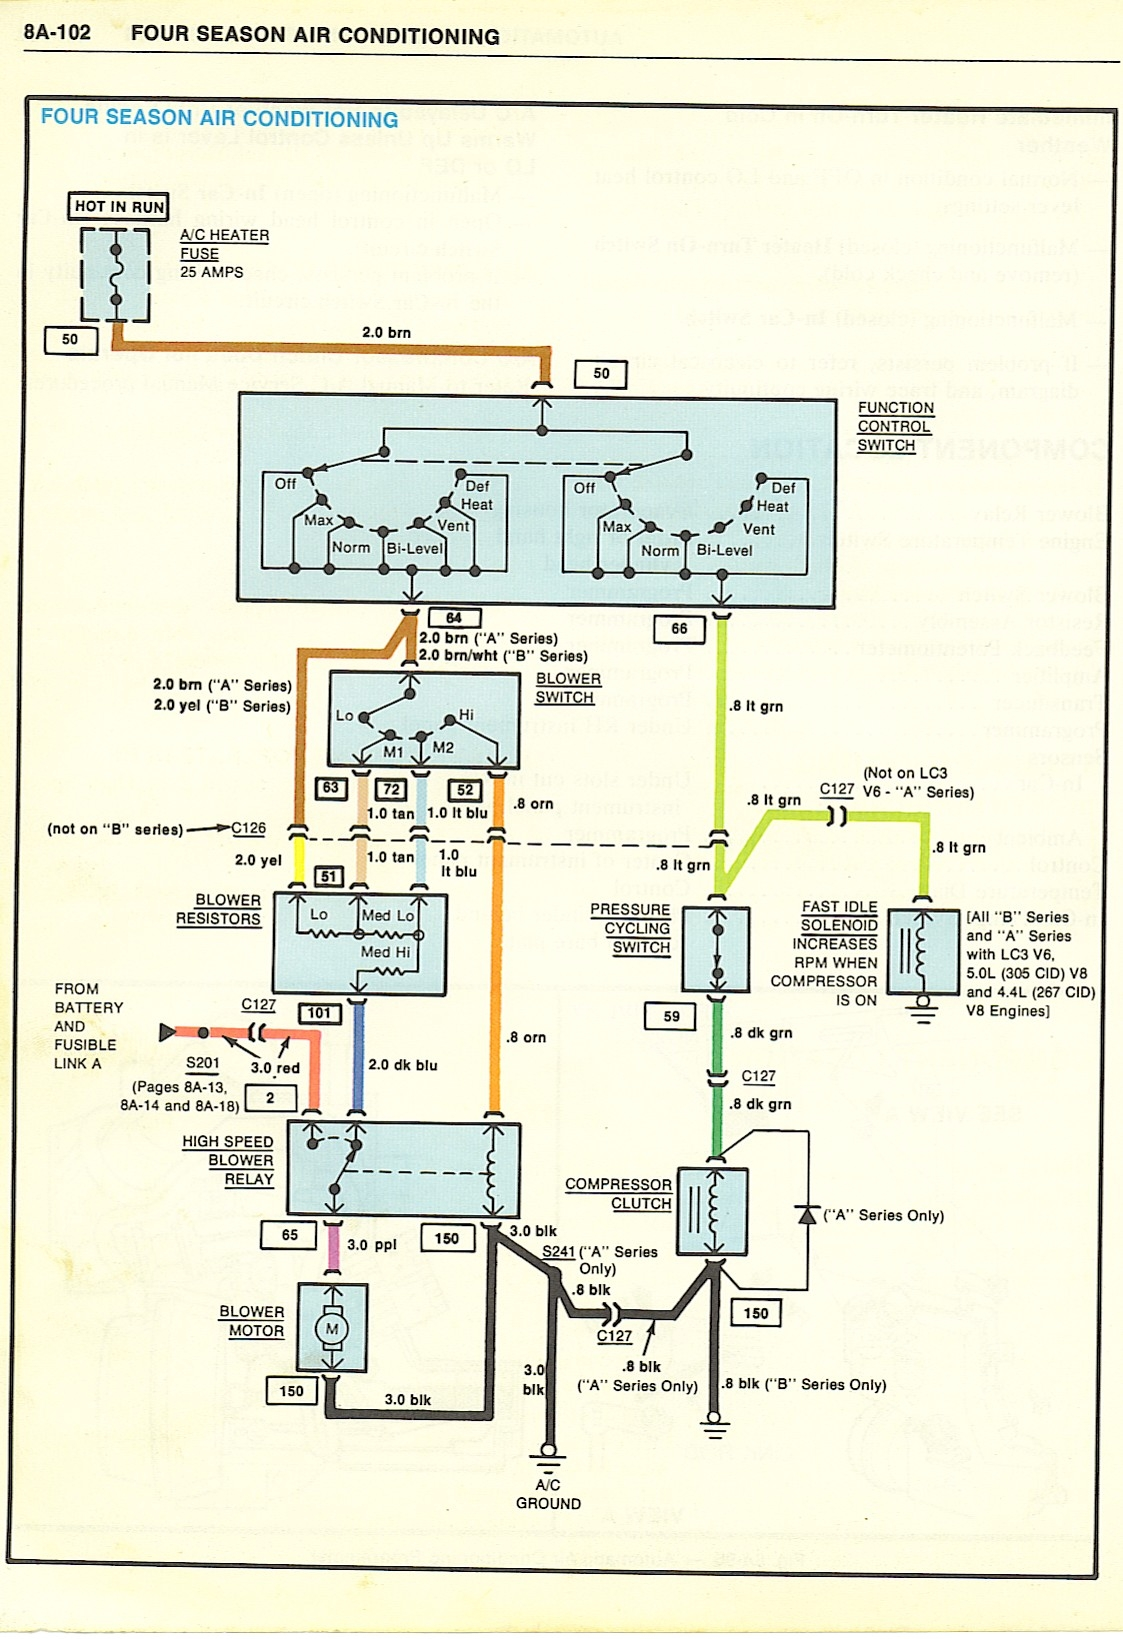 1968 FourSeasonAirConditioner chevy diagrams ac wiring diagram at pacquiaovsvargaslive.co